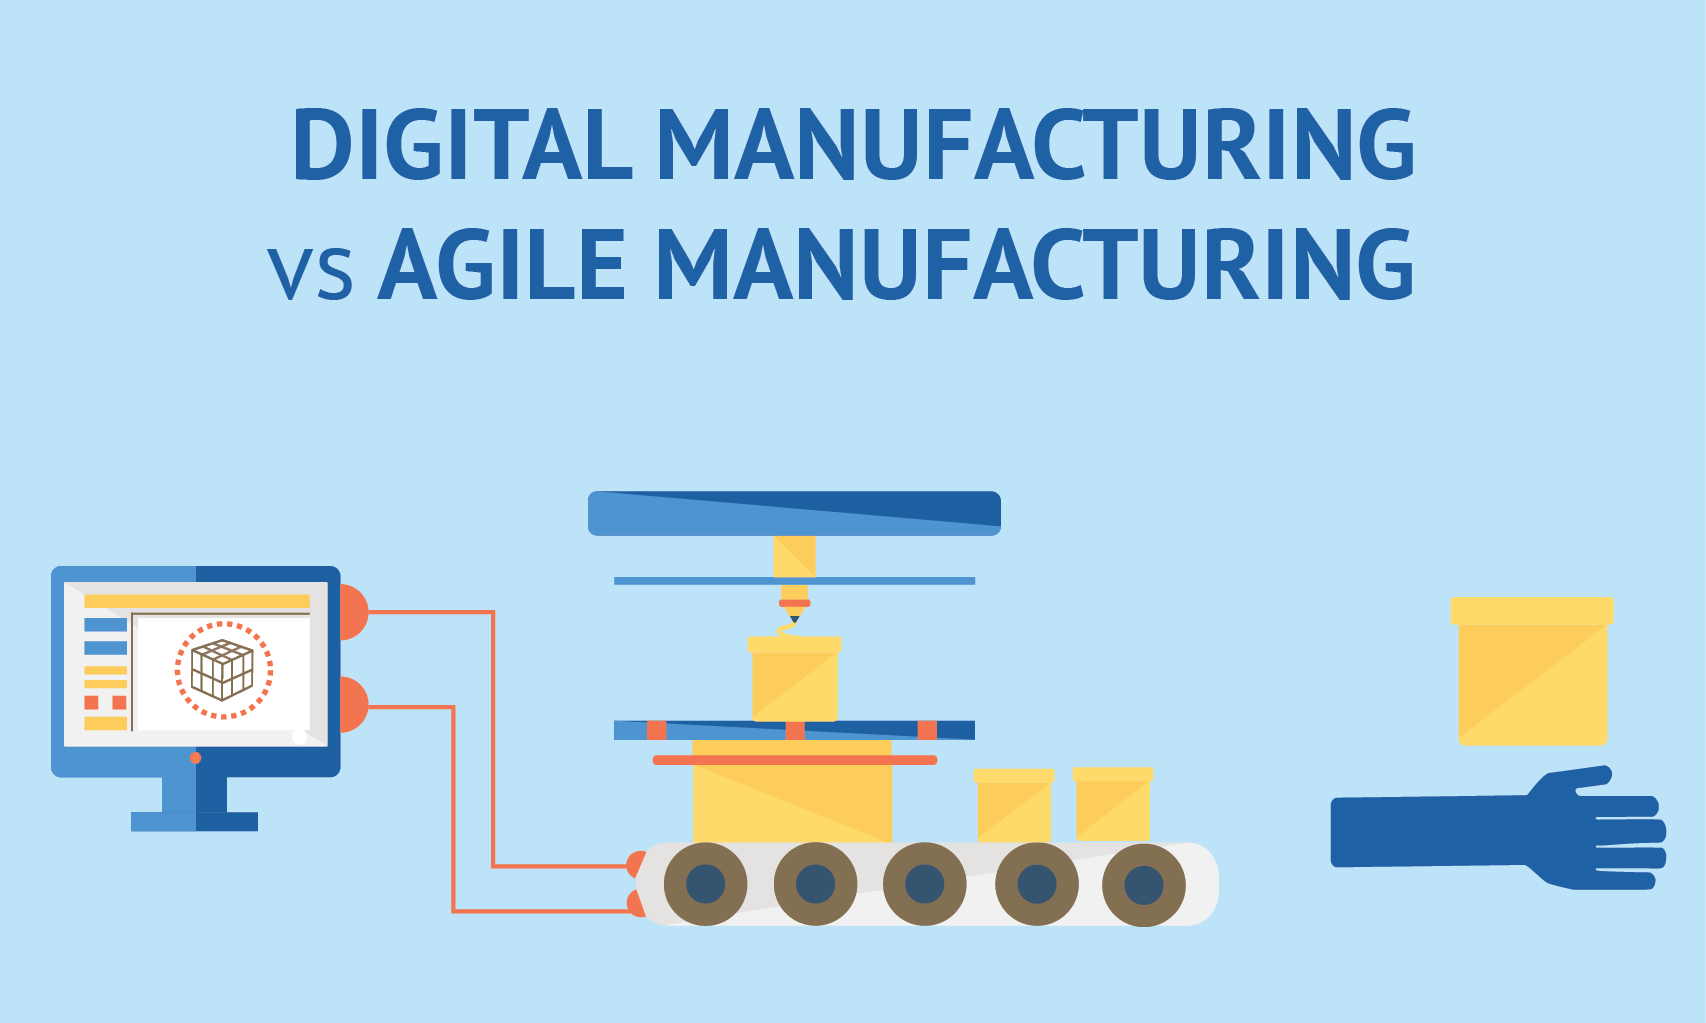 Digital Manufacturing or Agile Manufacturing?